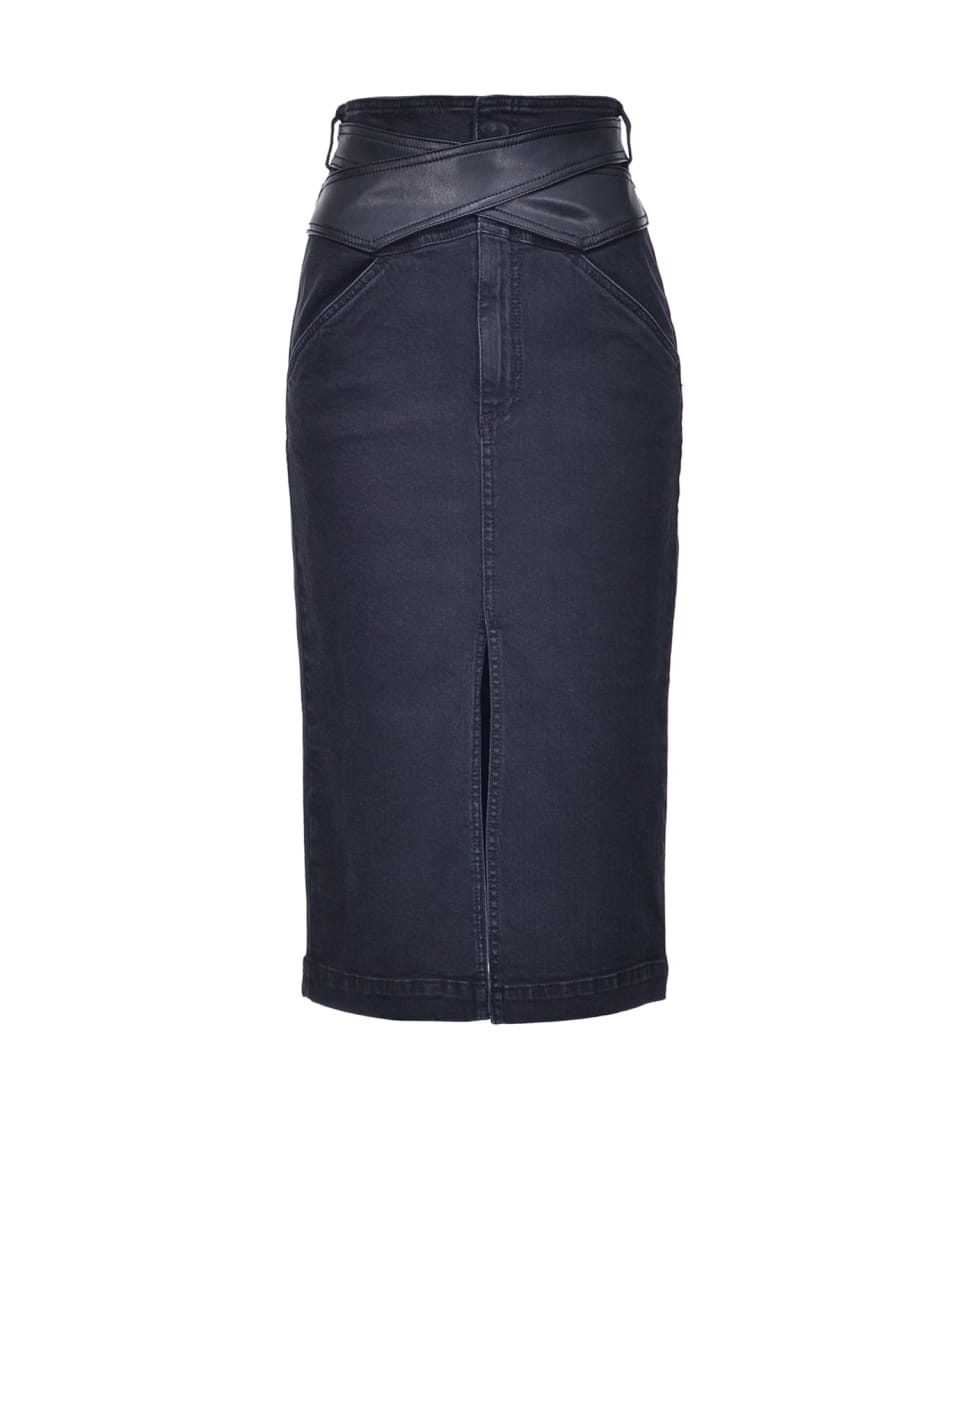 Midi-length denim skirt with leather-look belt